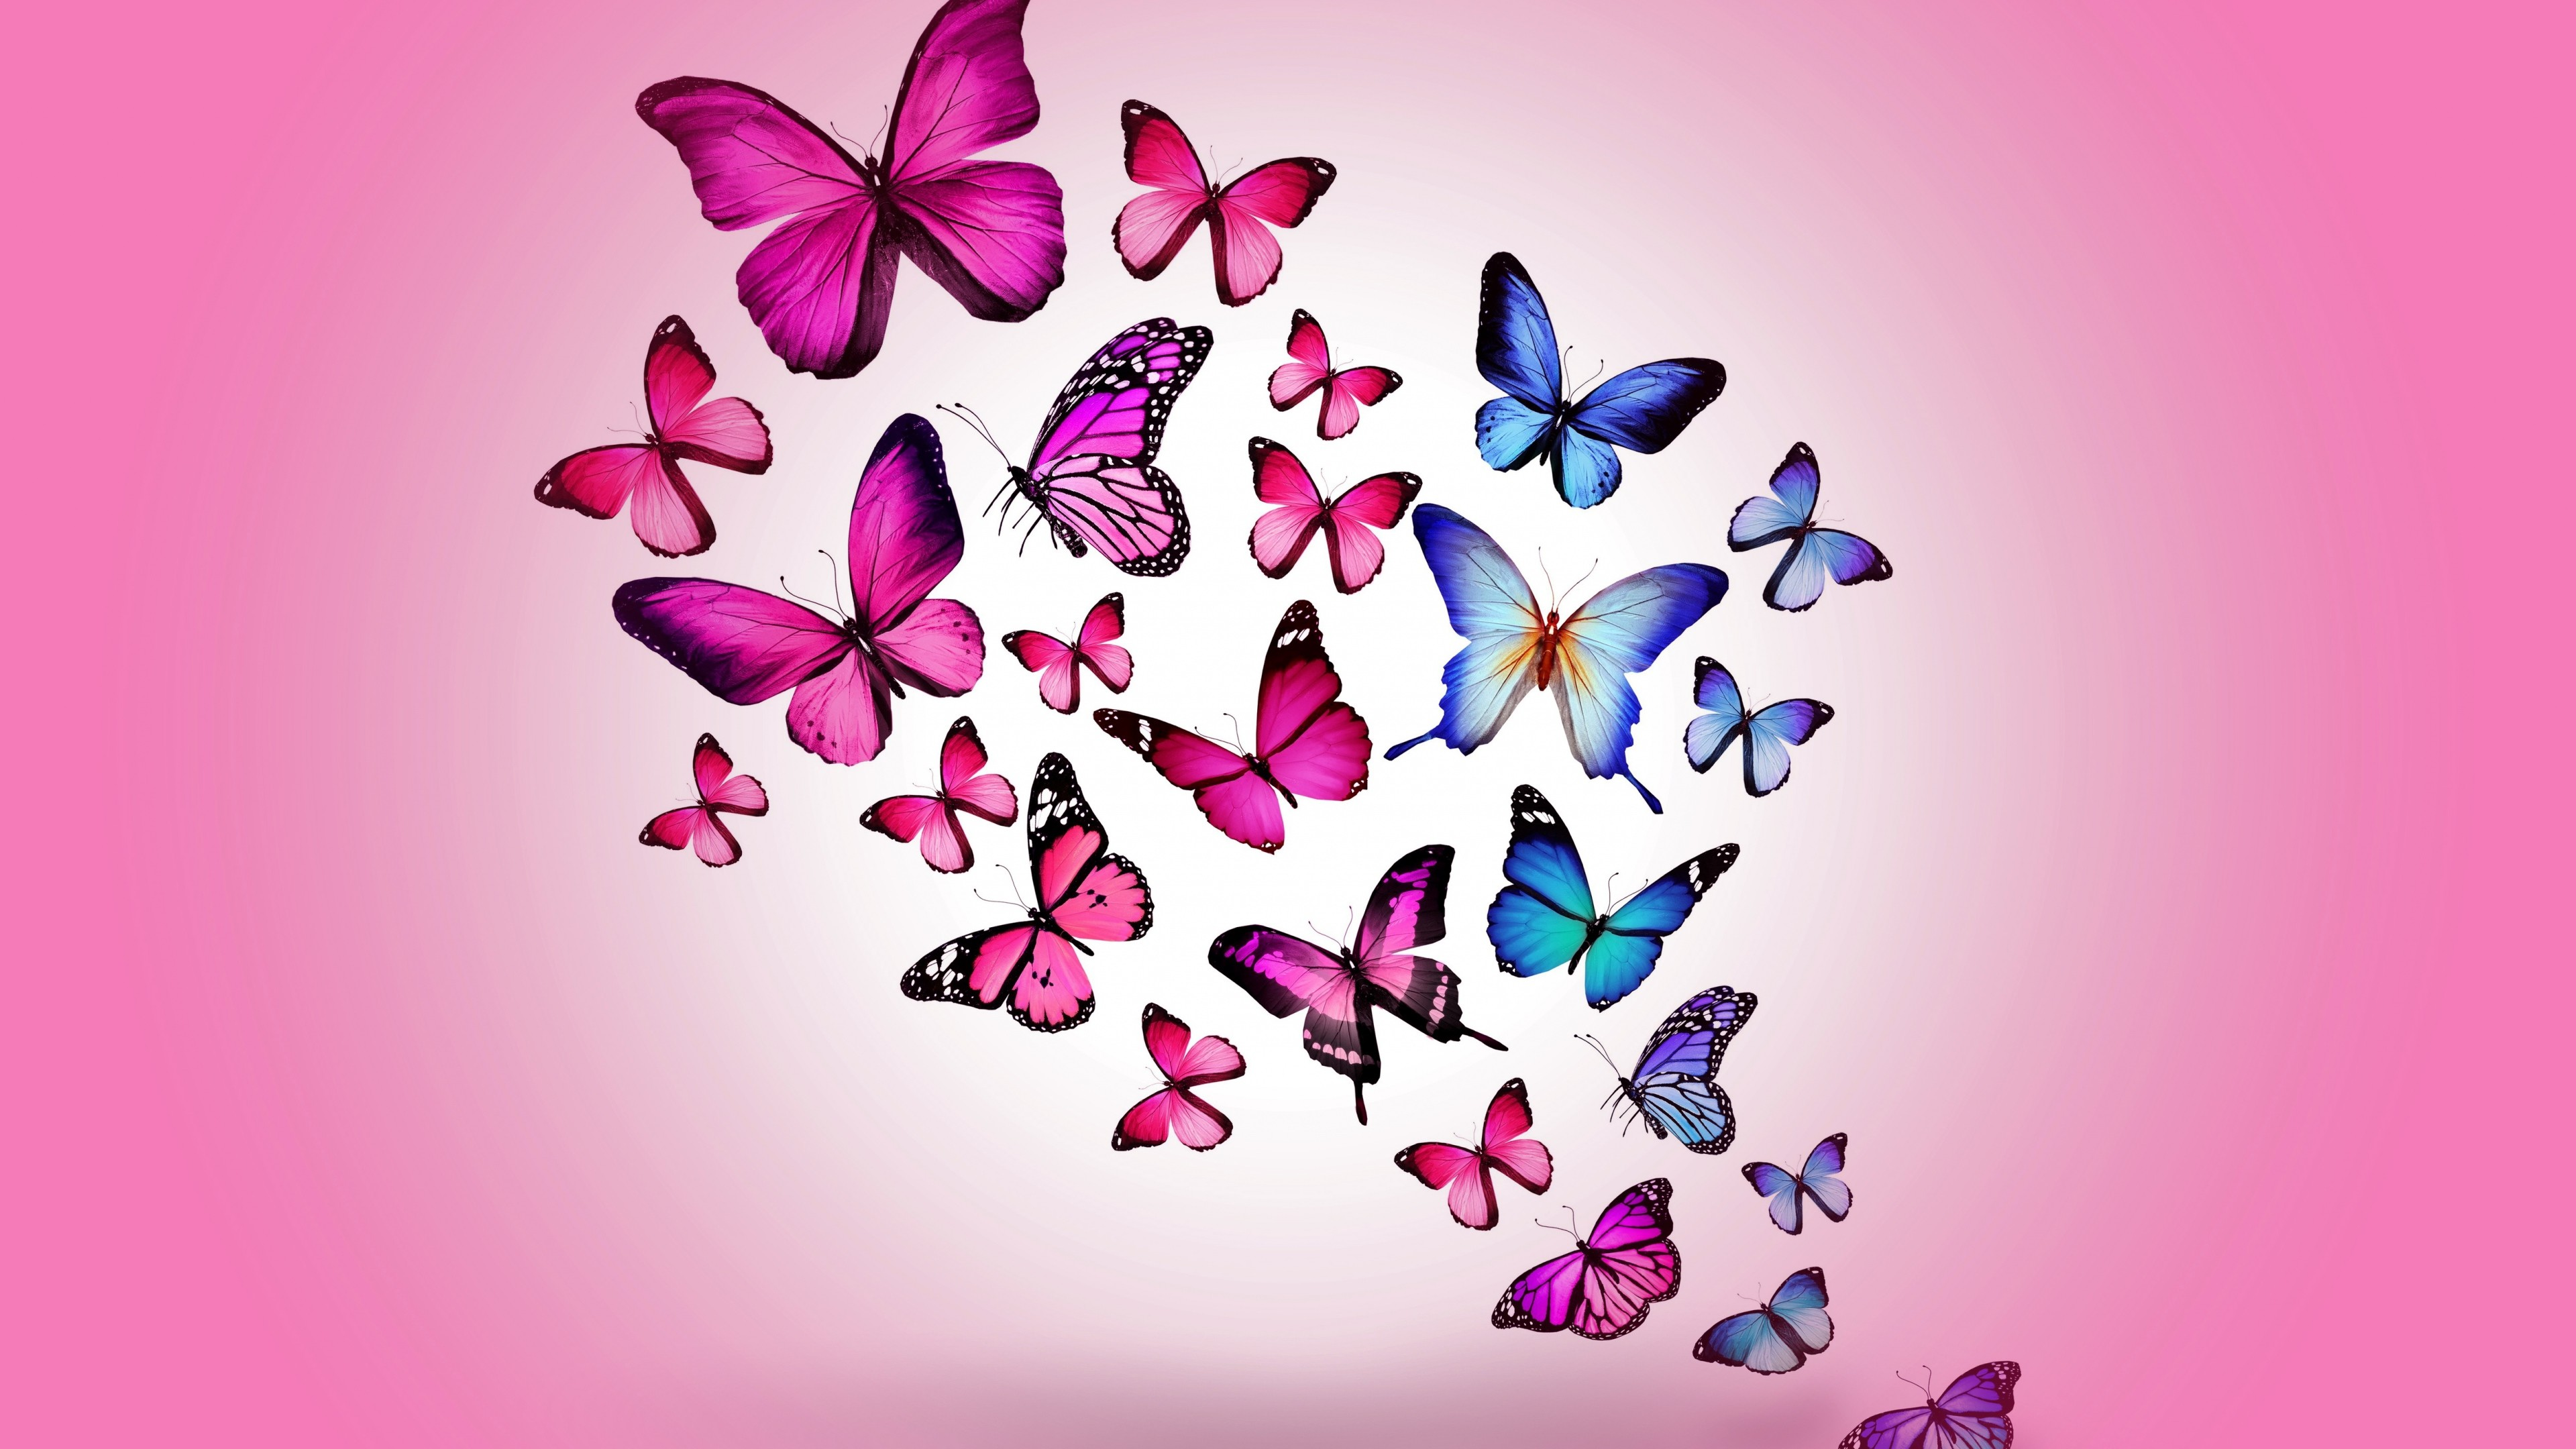 Butterfly Wallpaper Android   Src Amazing Butterfly - Desktop Butterfly Wallpaper Hd - HD Wallpaper